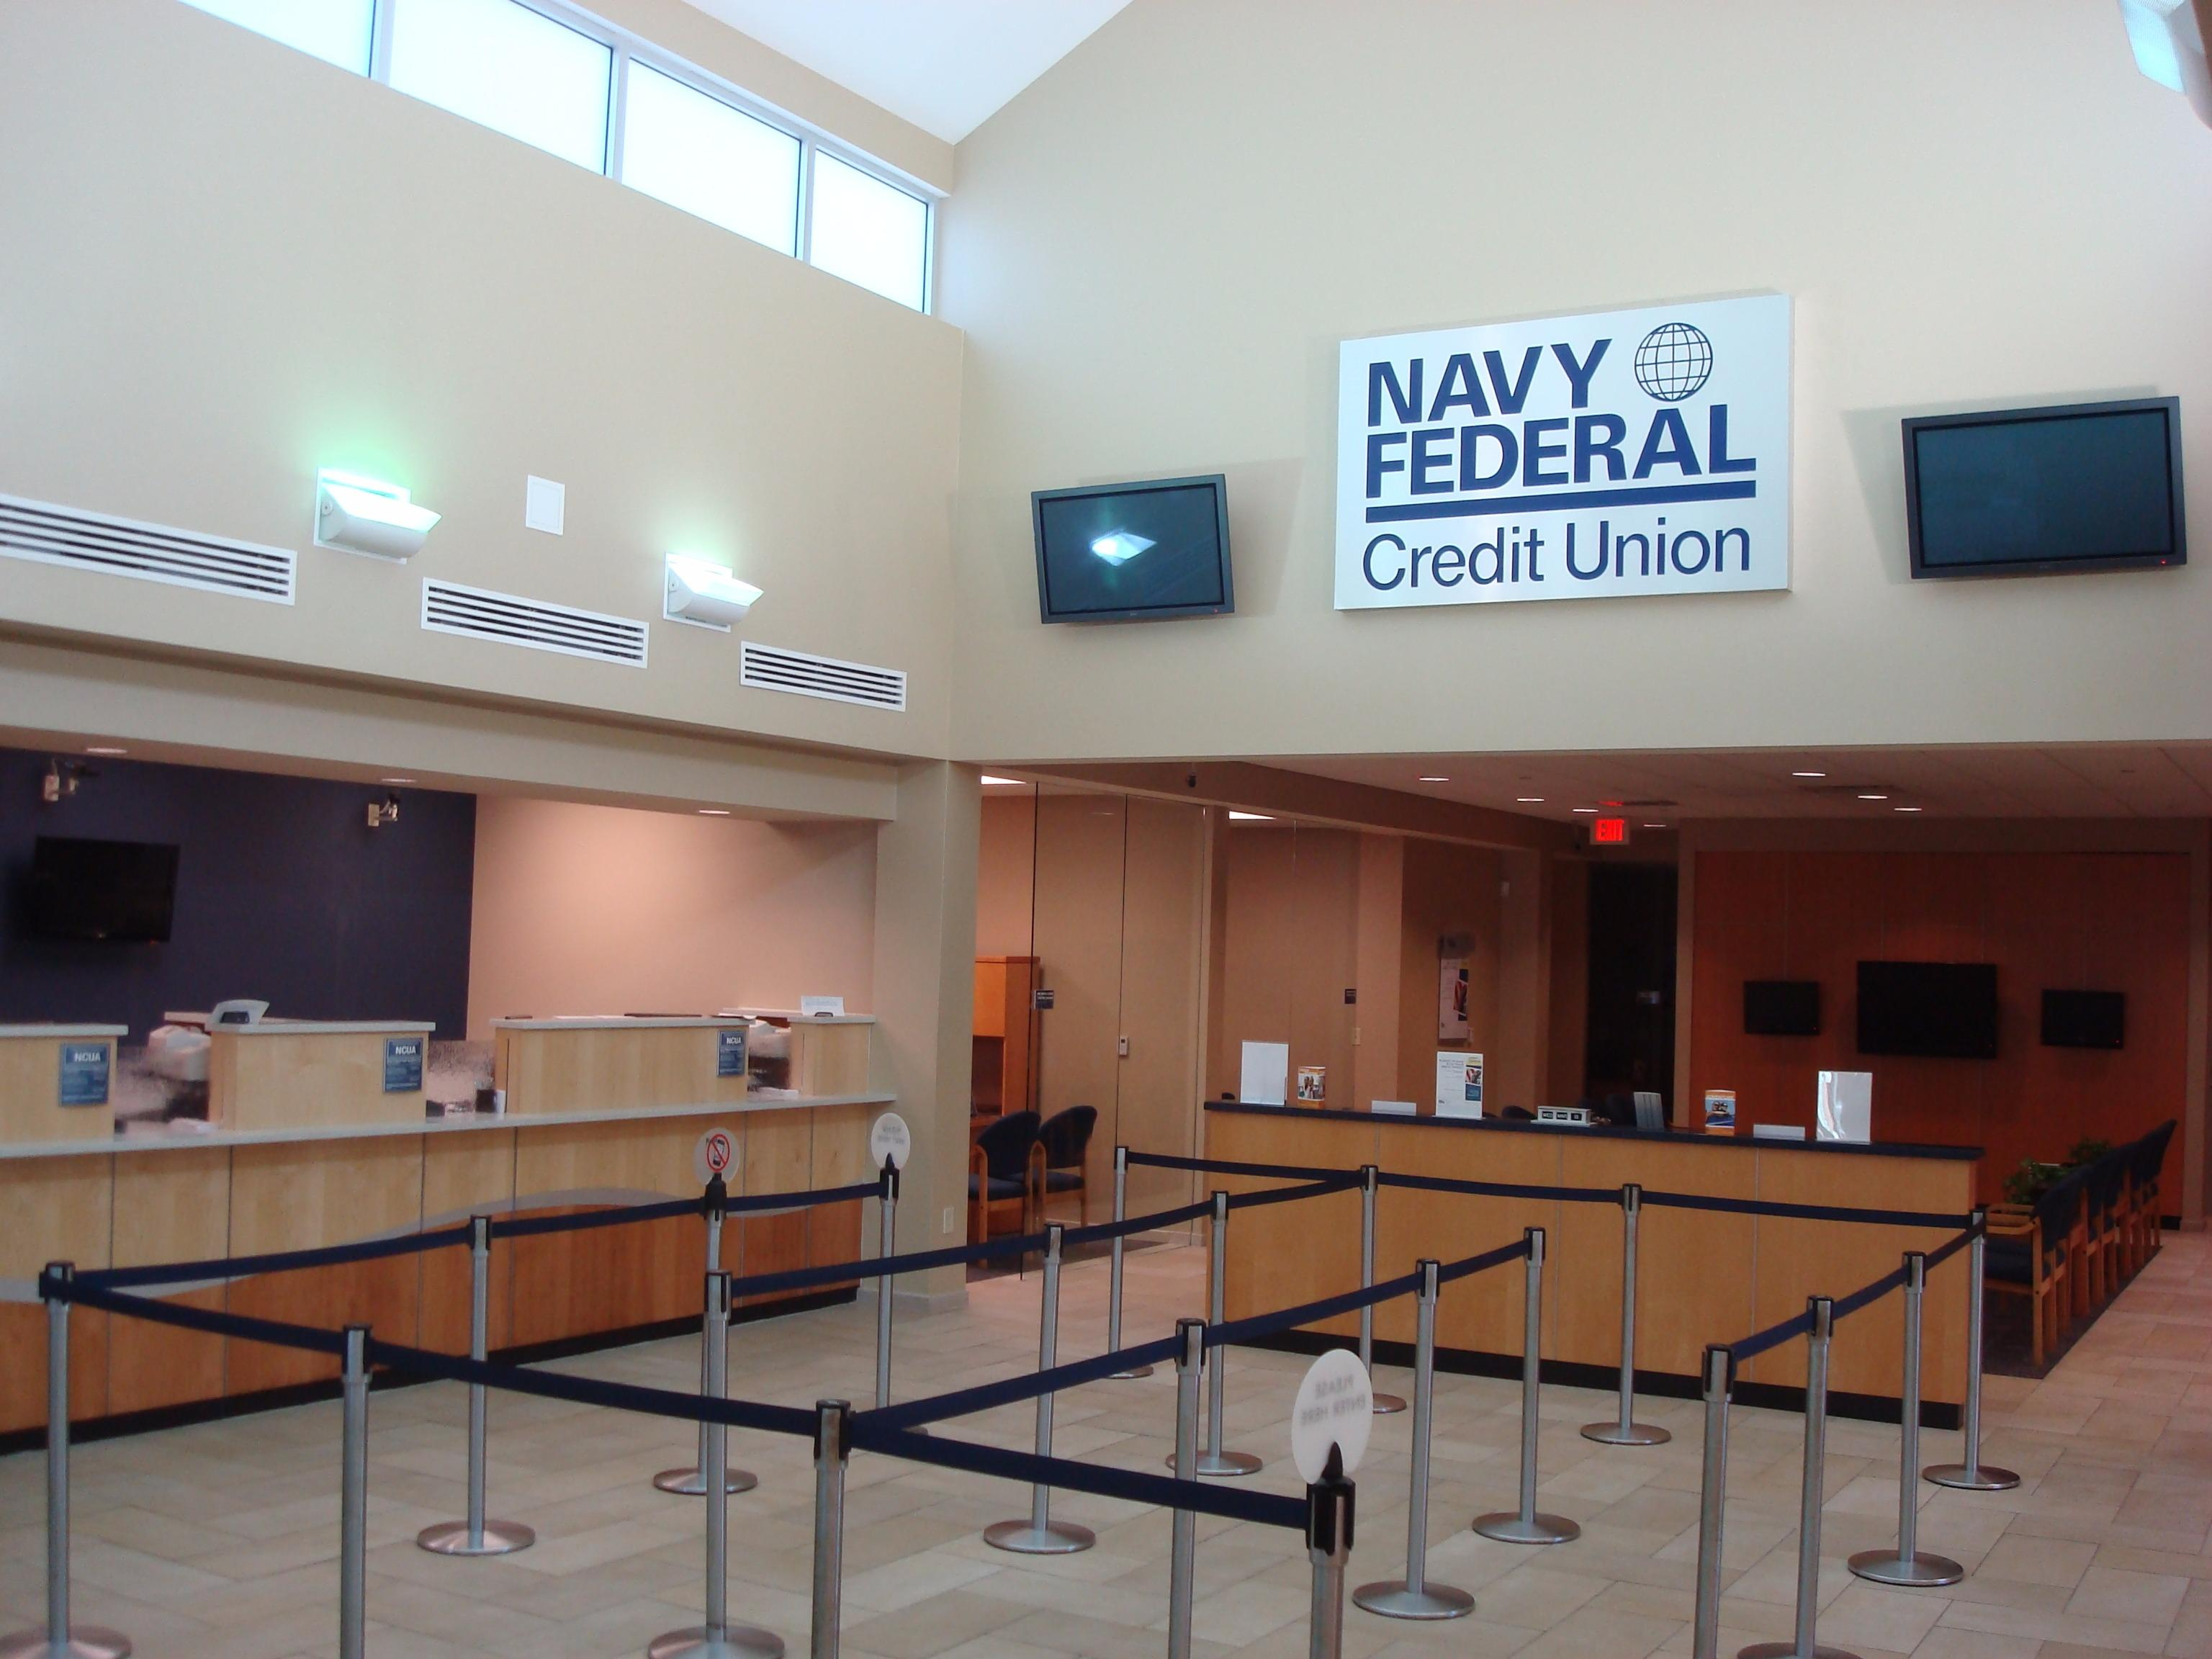 Navy Federal Credit Union 1772 Salem Road Virginia Beach, VA Banks    MapQuest